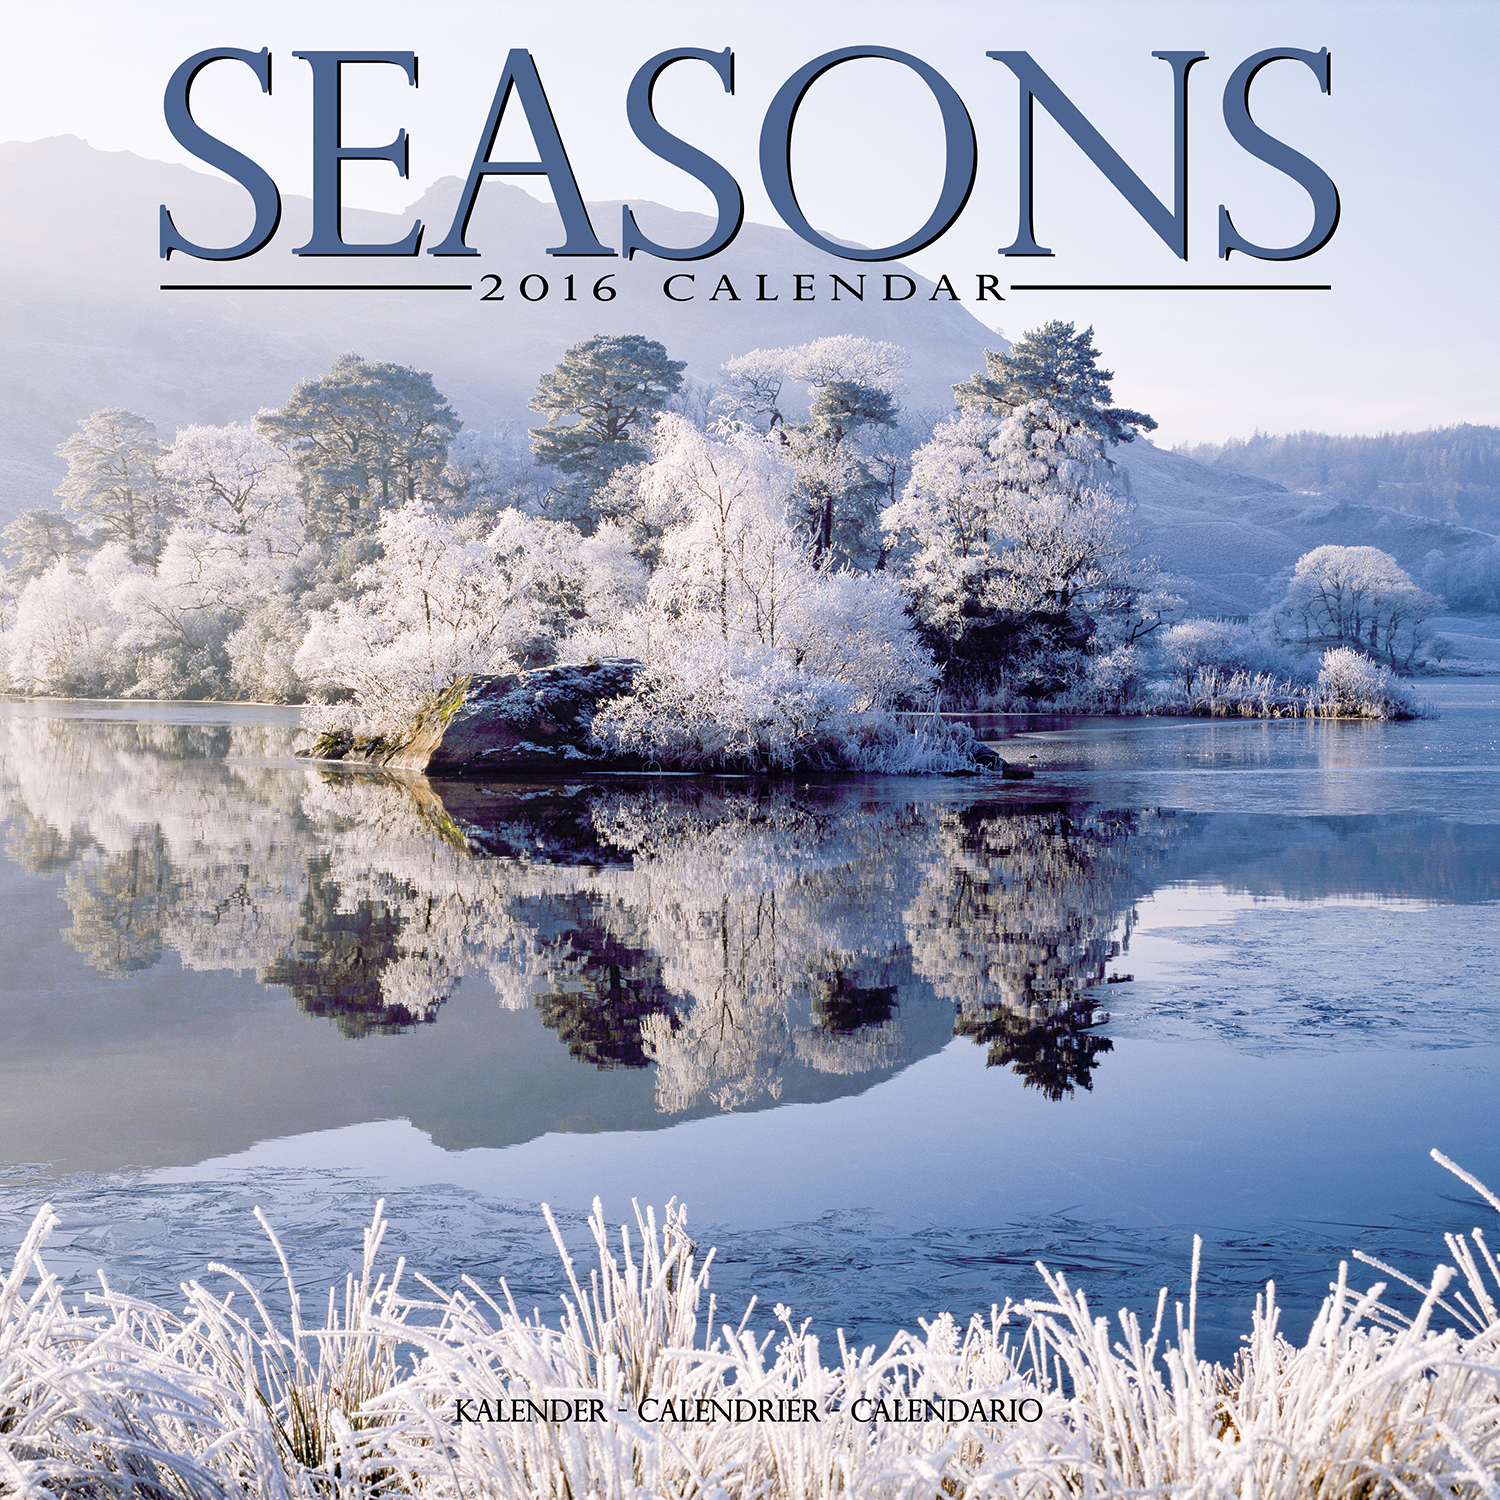 Seasons Calendar 2016 | Pet Prints Inc.